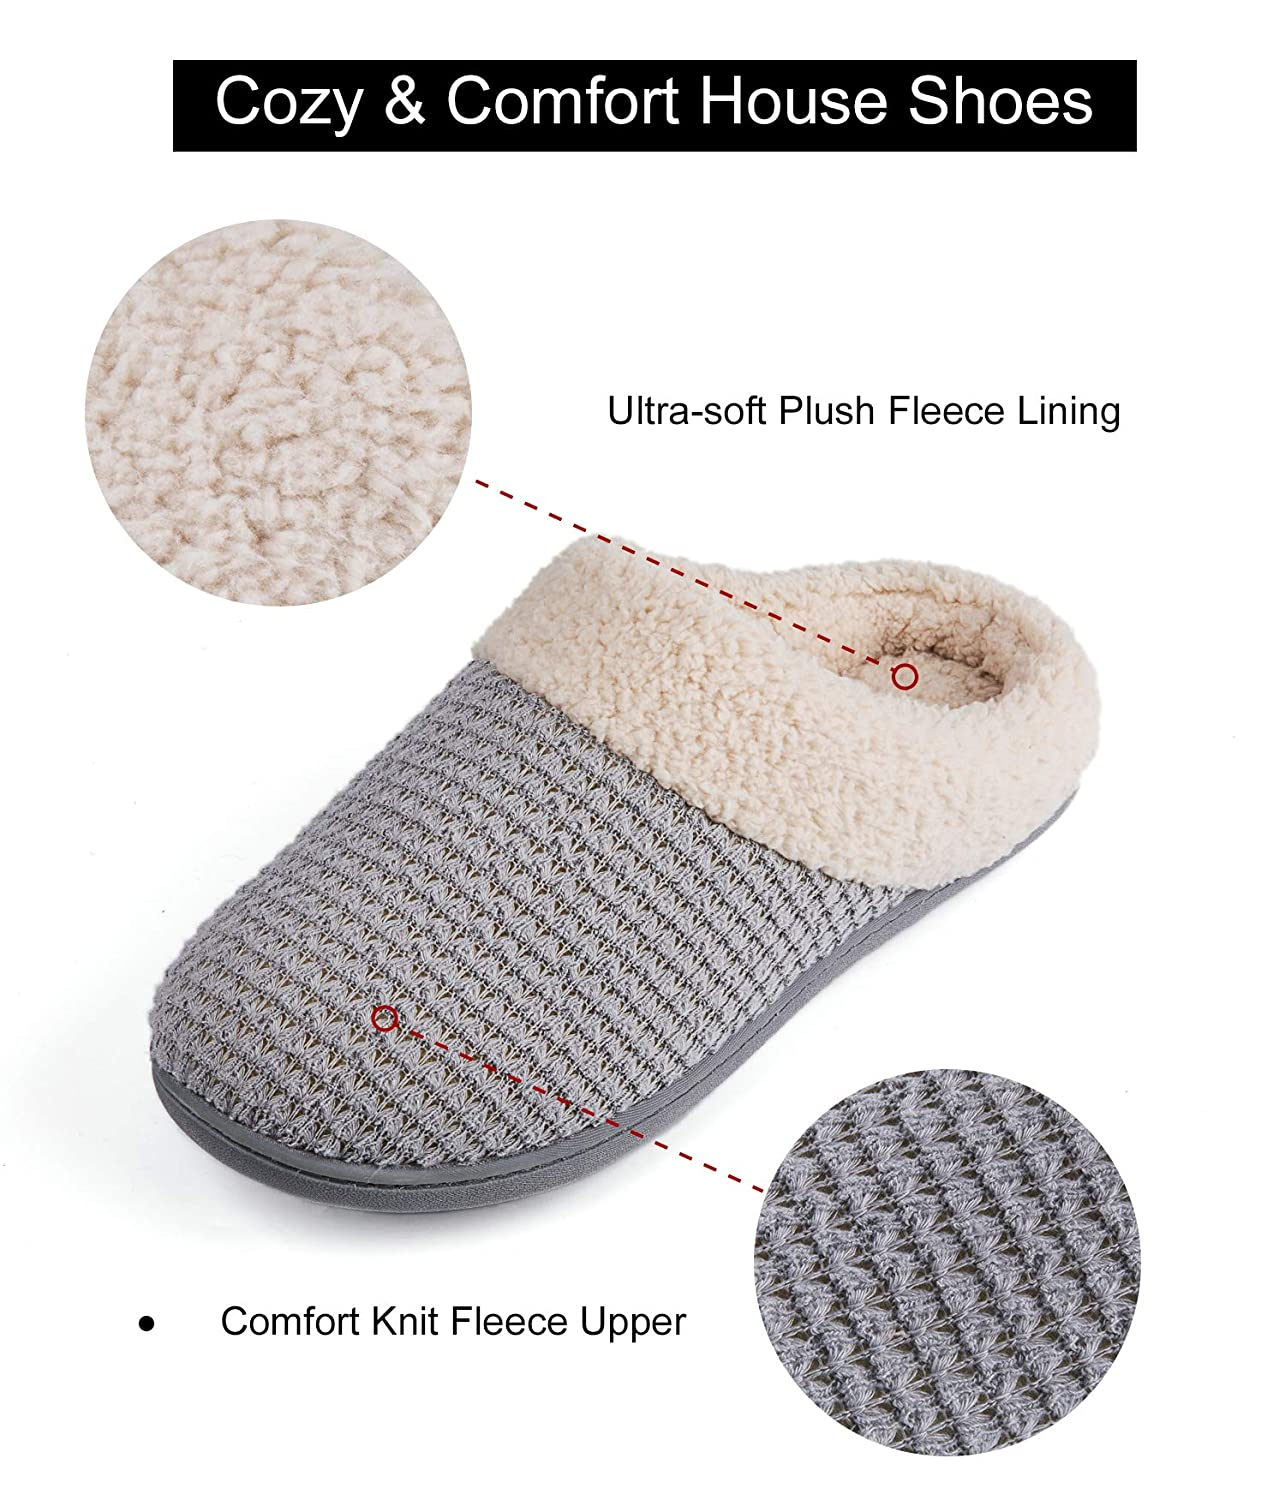 3d1db9f220 Amazon.com | Women's Comfort Coral Fleece Memory Foam Slippers Fuzzy Plush  Lining Slip-on Clog House Shoes for Indoor & Outdoor Use | Slippers